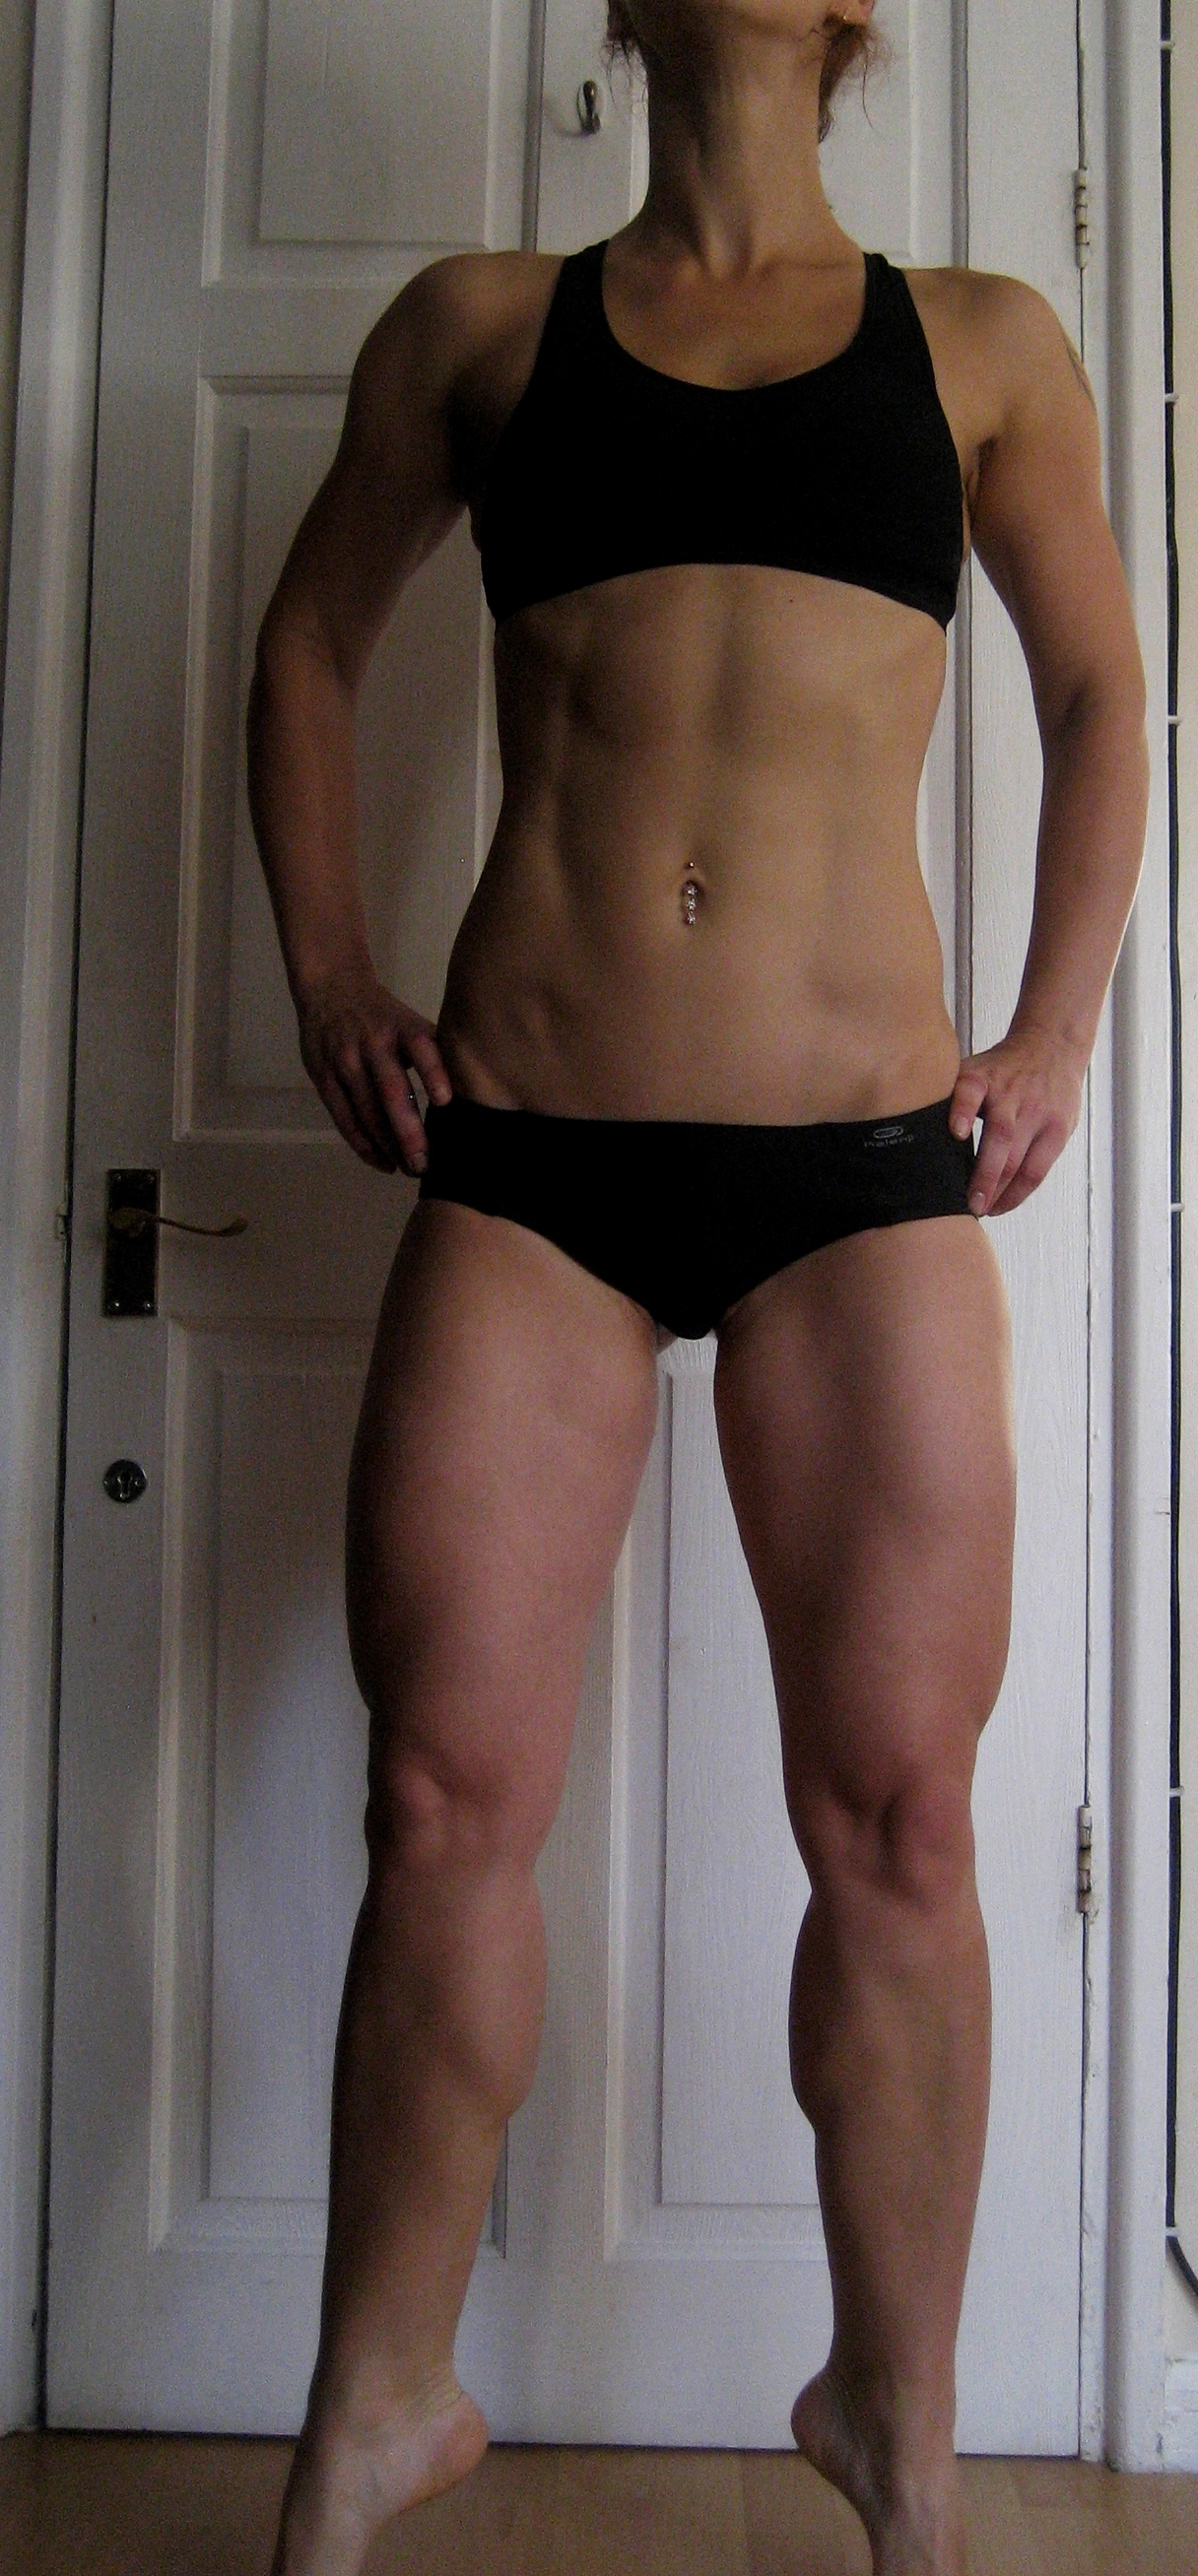 60kg Female with 8% Body Fat